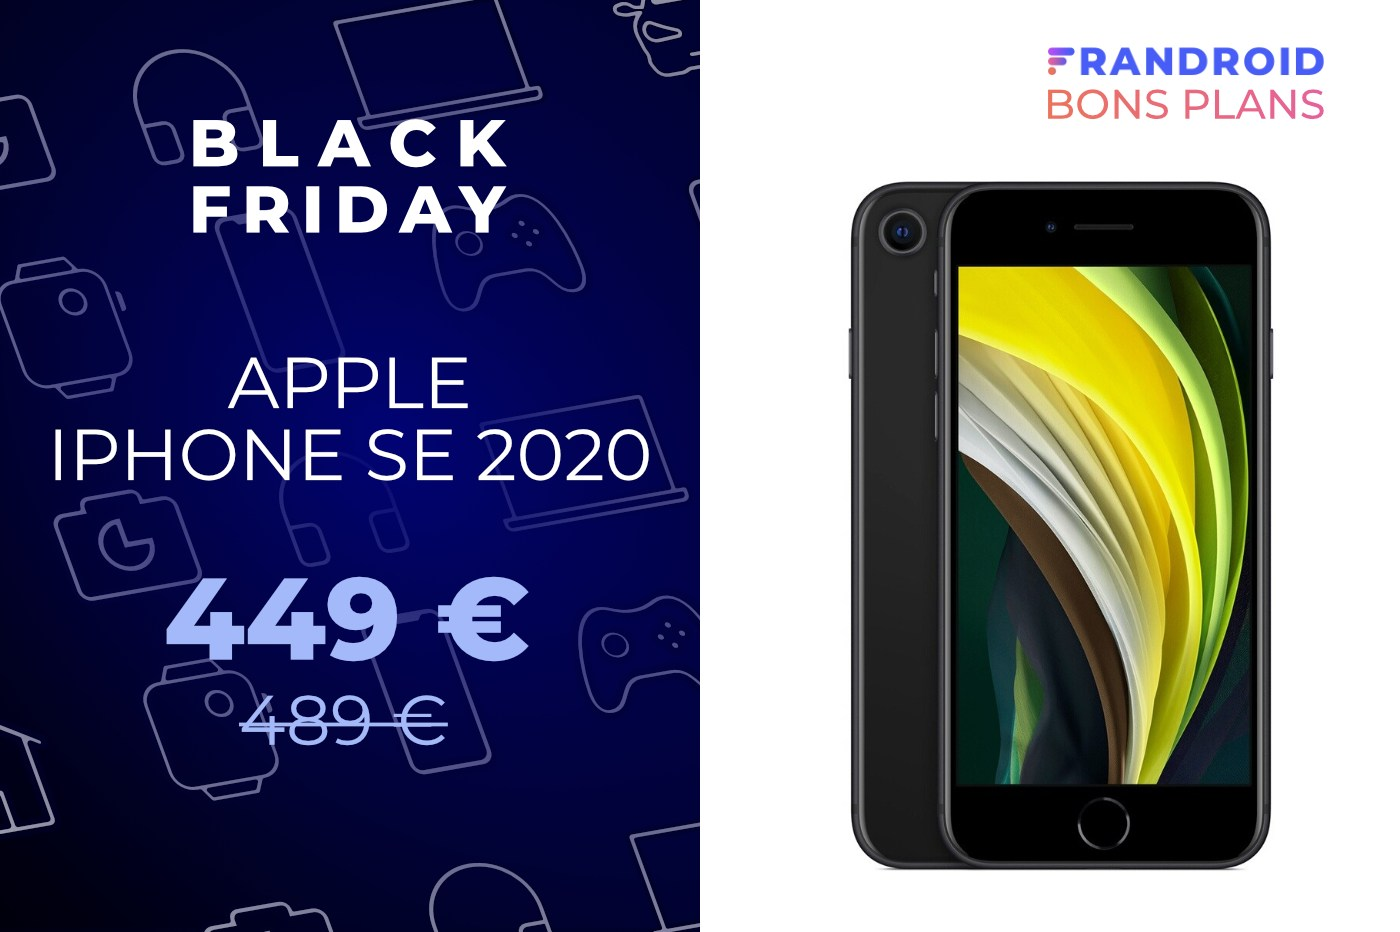 Fnac et Darty font baisser le prix de l'iPhone SE 2020 pour le Black Friday